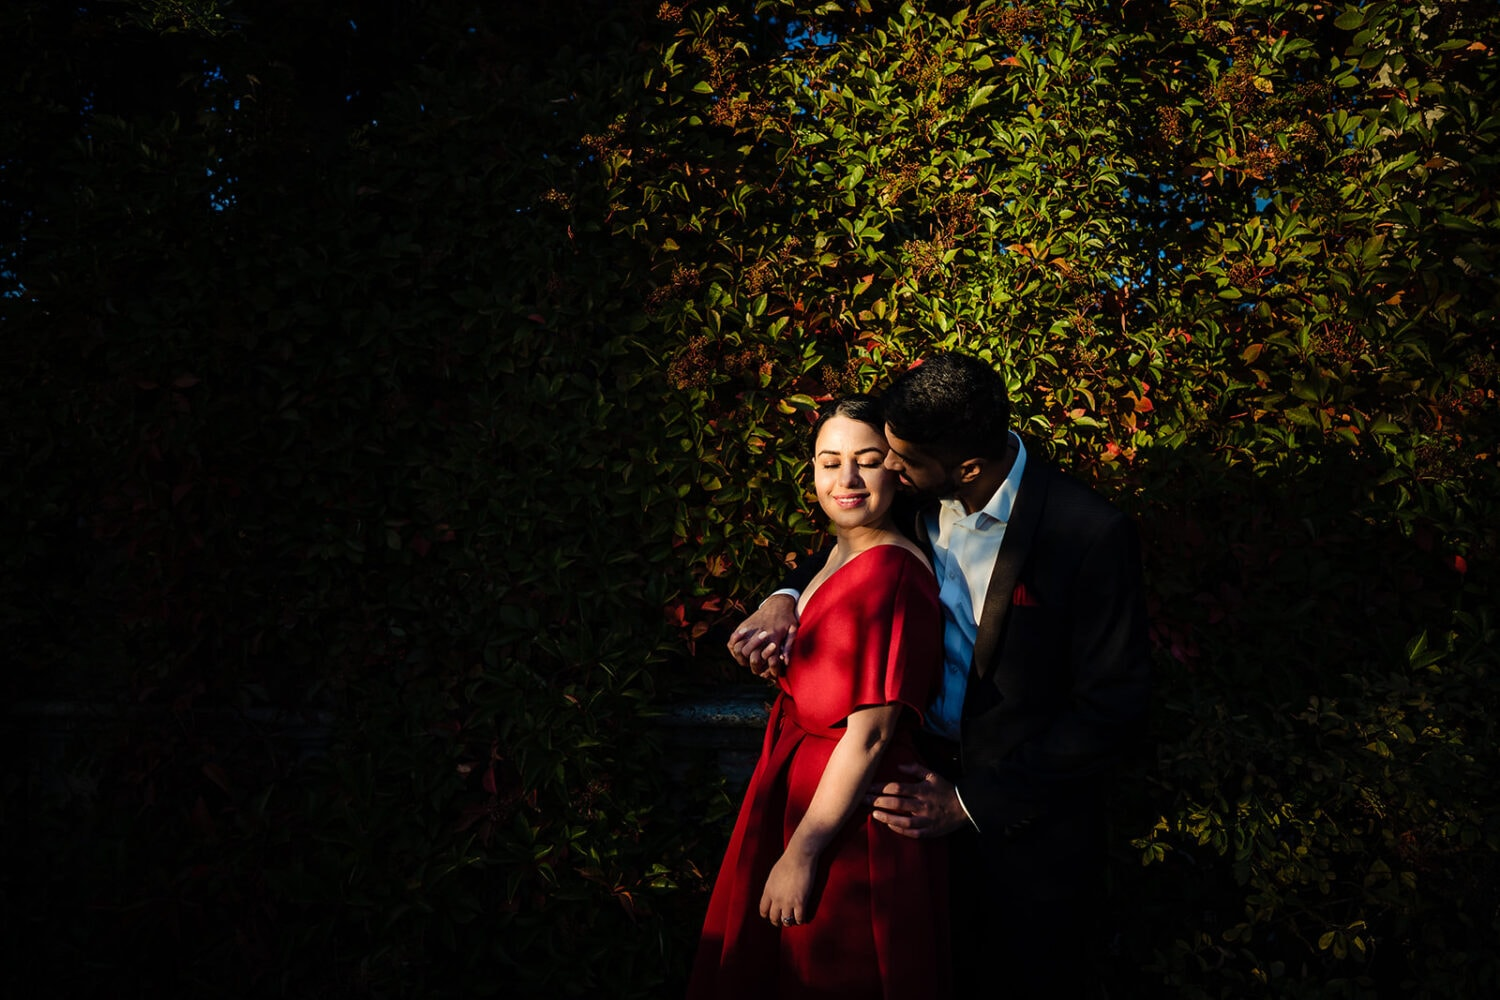 Asian Bride and groom hug at a golden hour engagement shoot